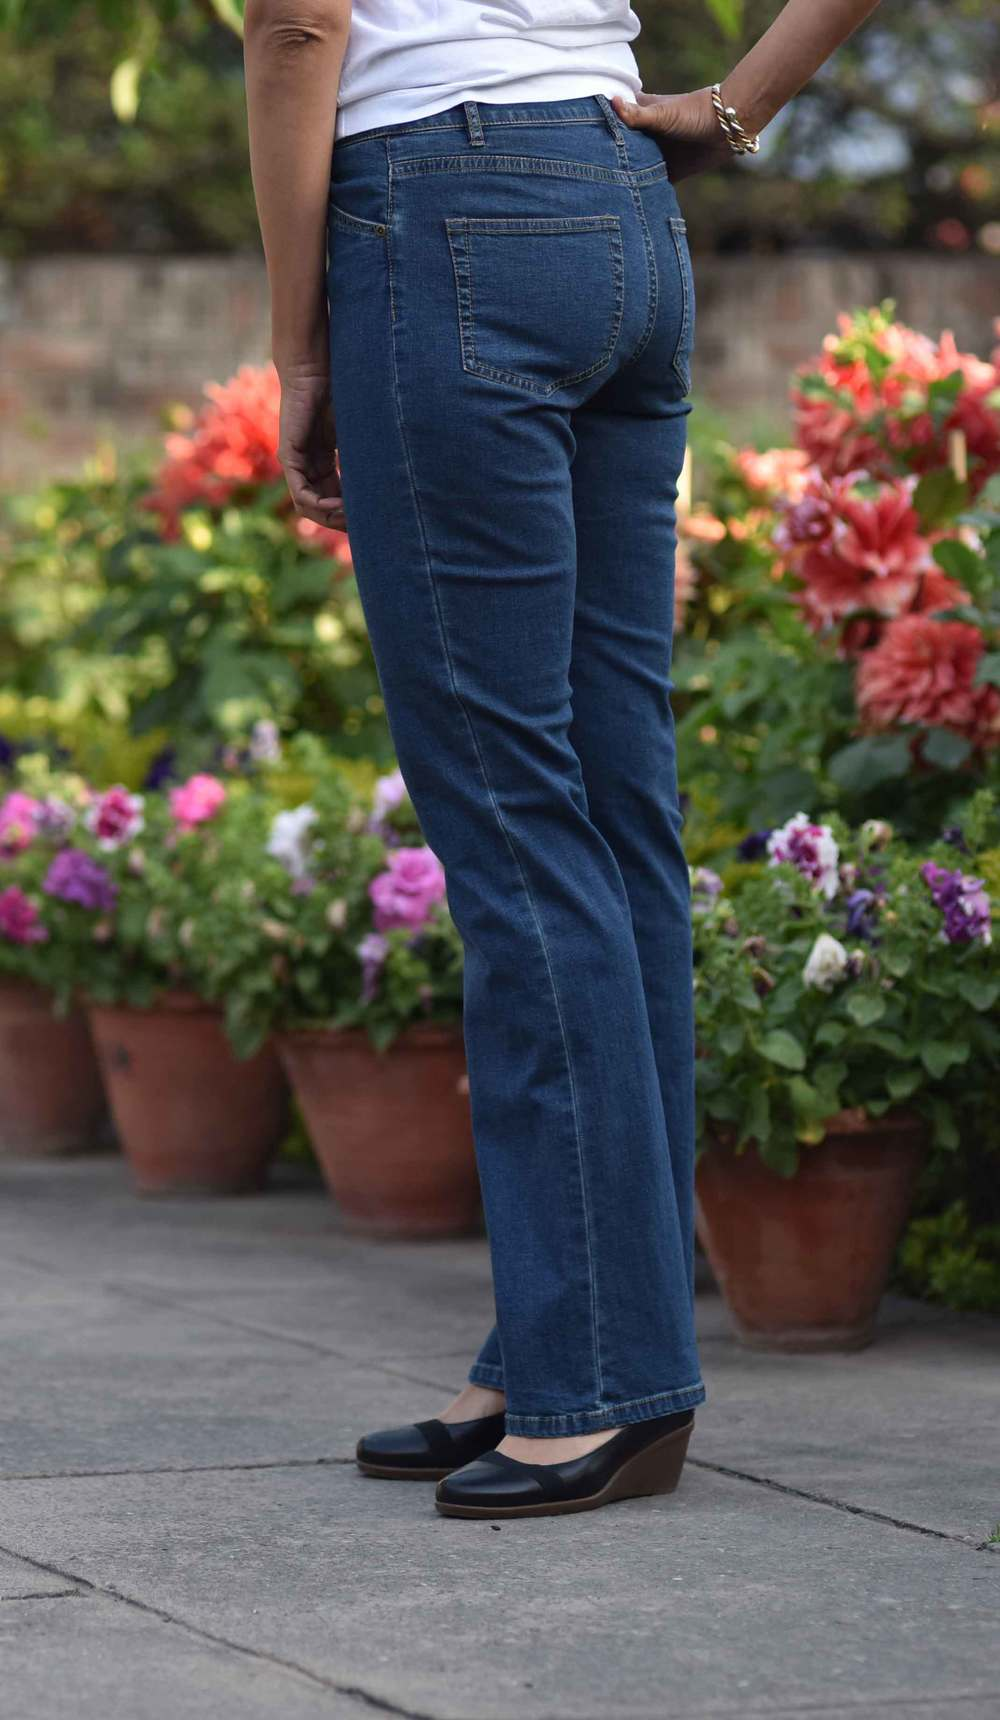 The JJill Tried and True Fit Bootcut jeans look so cool! Image©gunjanvirk